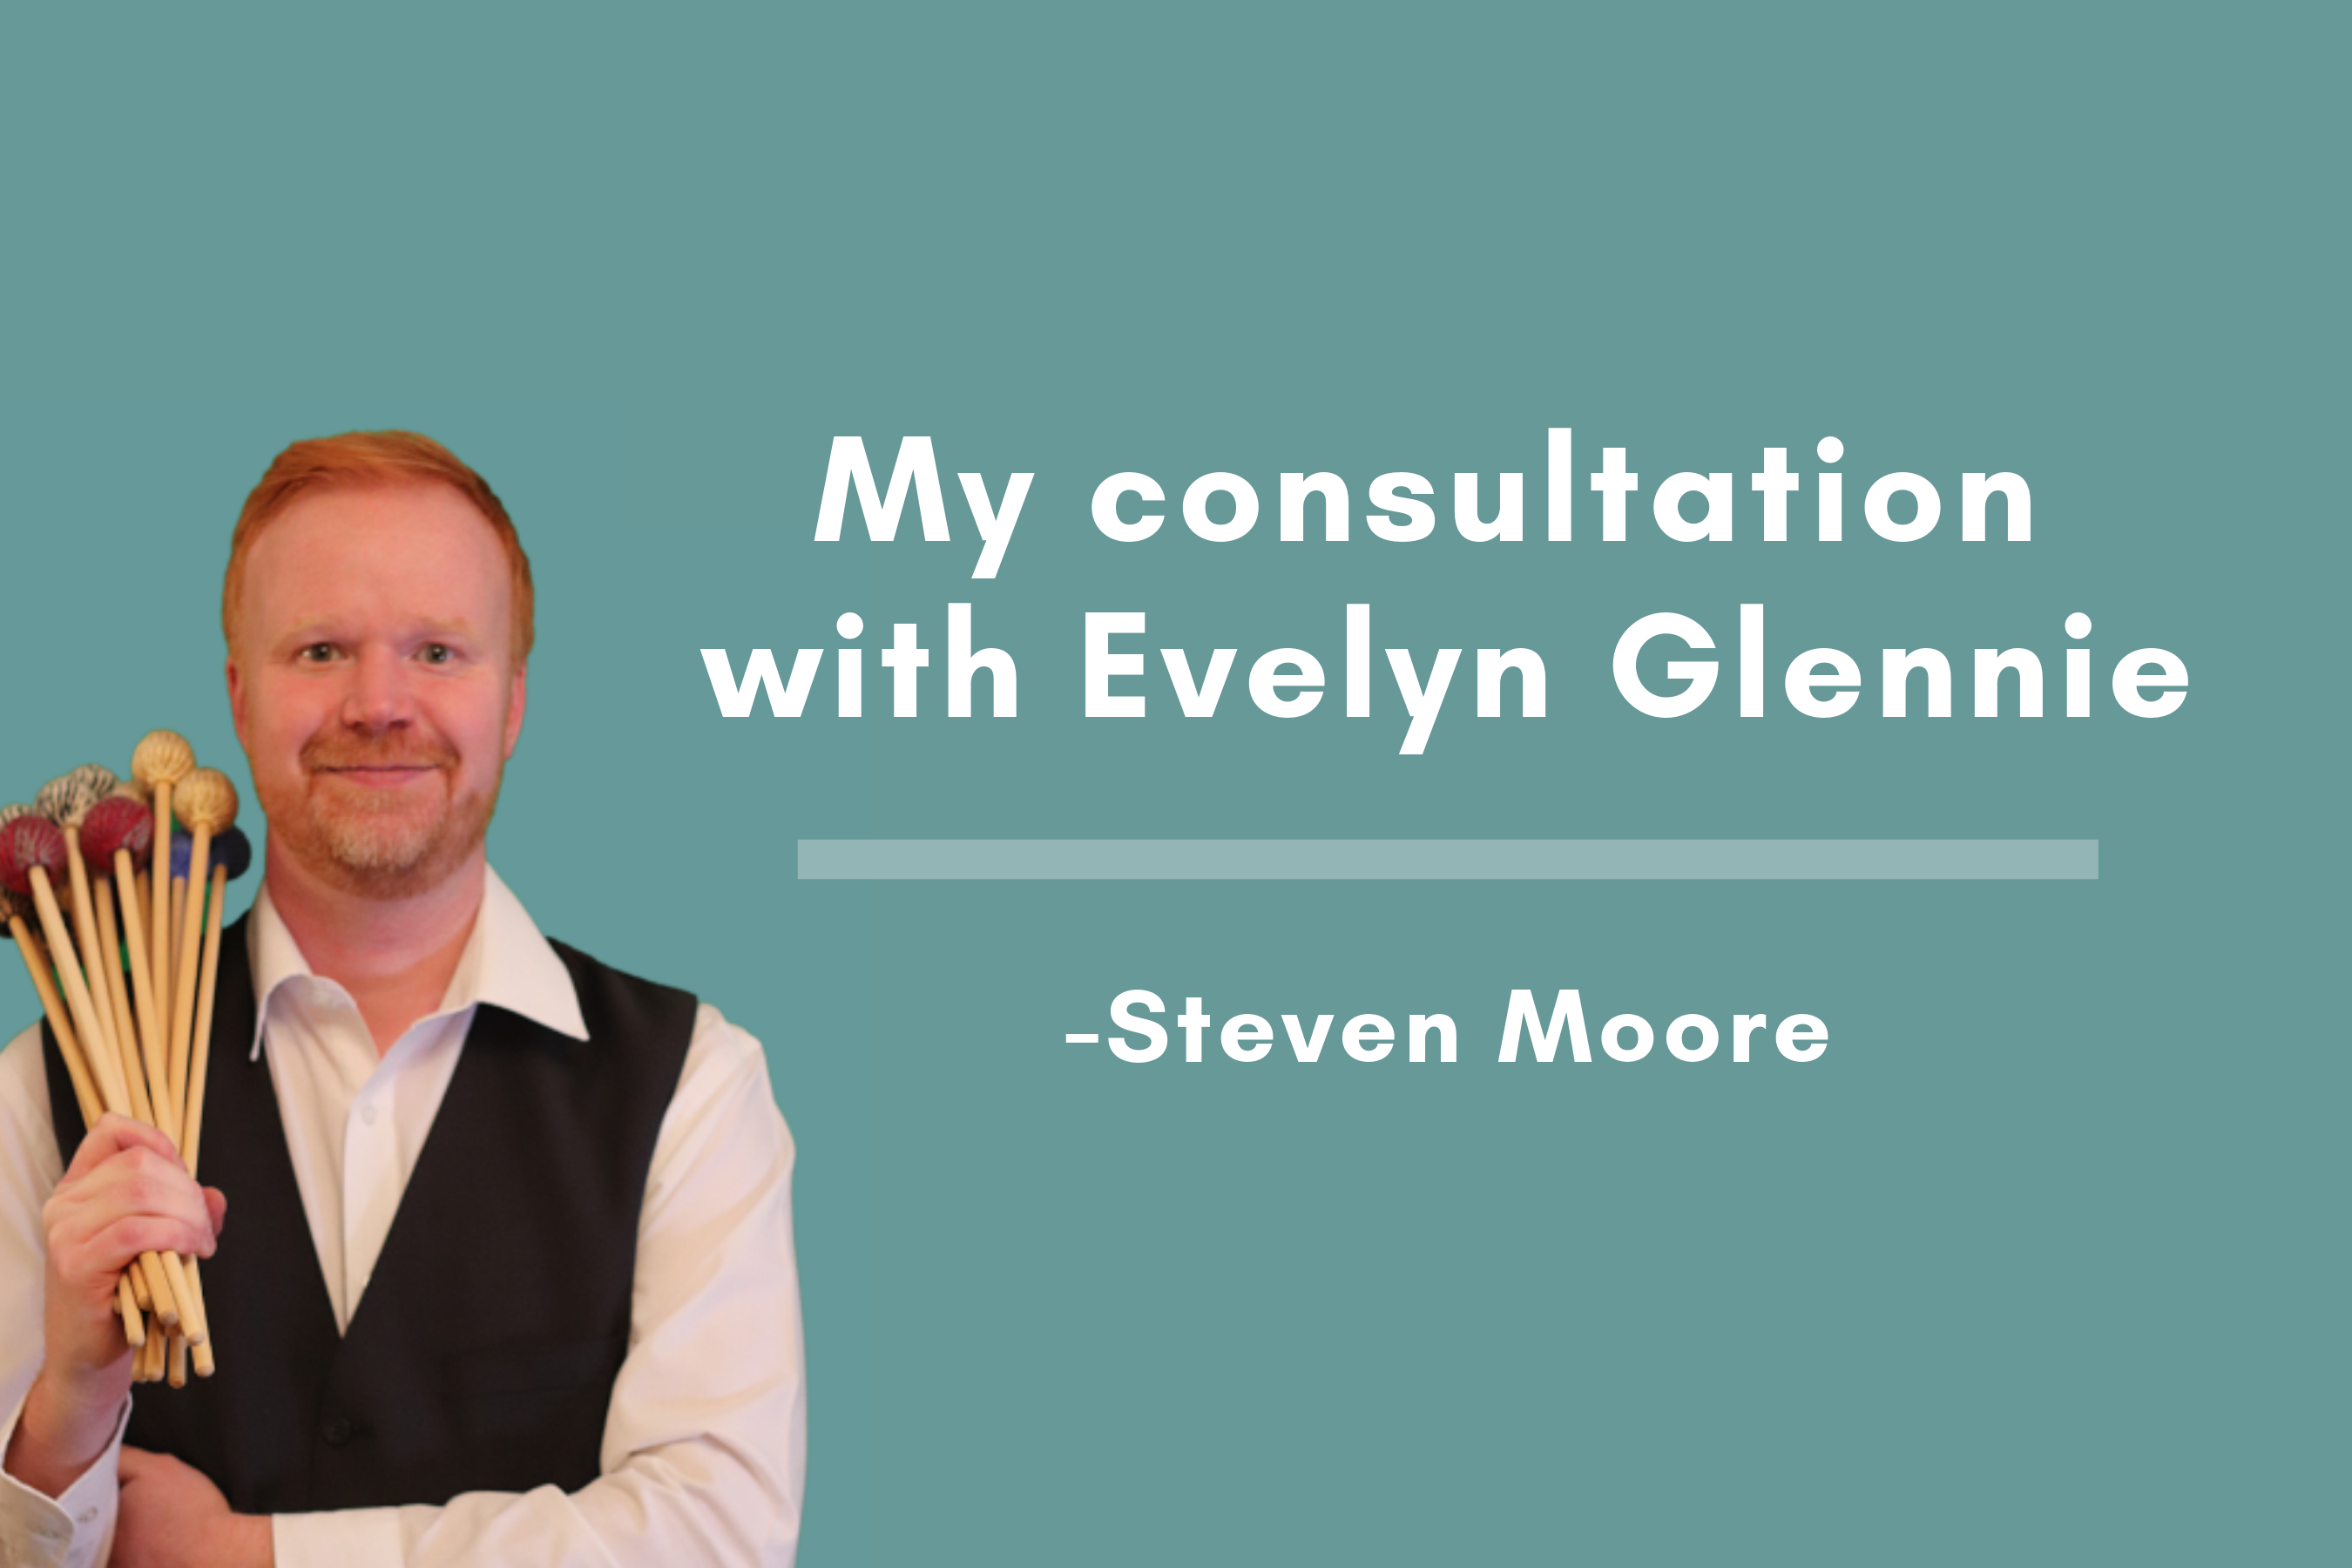 Steven Moore's Consultation with Evelyn Glennie Blog Post Cover